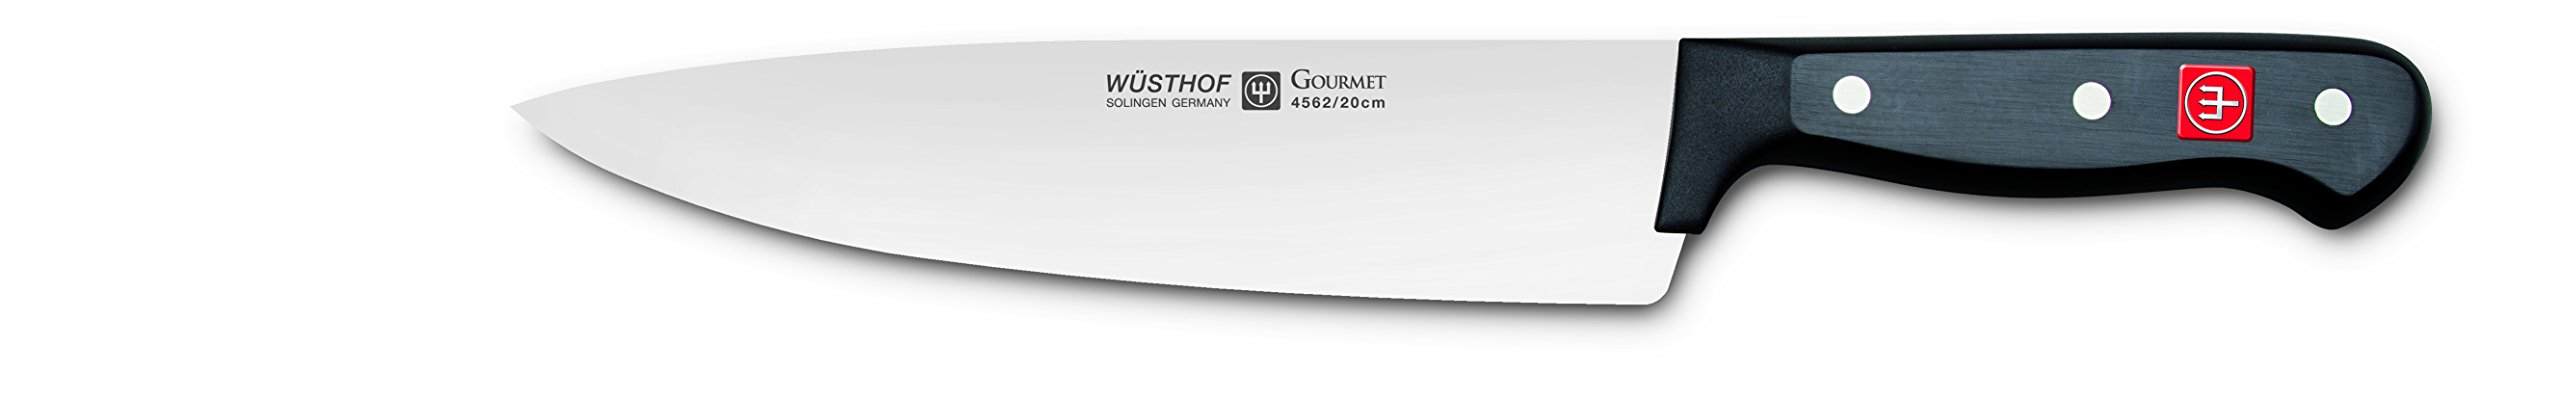 WÜSTHOF Gourmet 8 Inch Chef's Knife | Full-Tang 8'' Cook's Knife | Precision Forged High-Carbon Stainless Steel German Made Cook's Knife - Model 4562-7/20 by Wüsthof